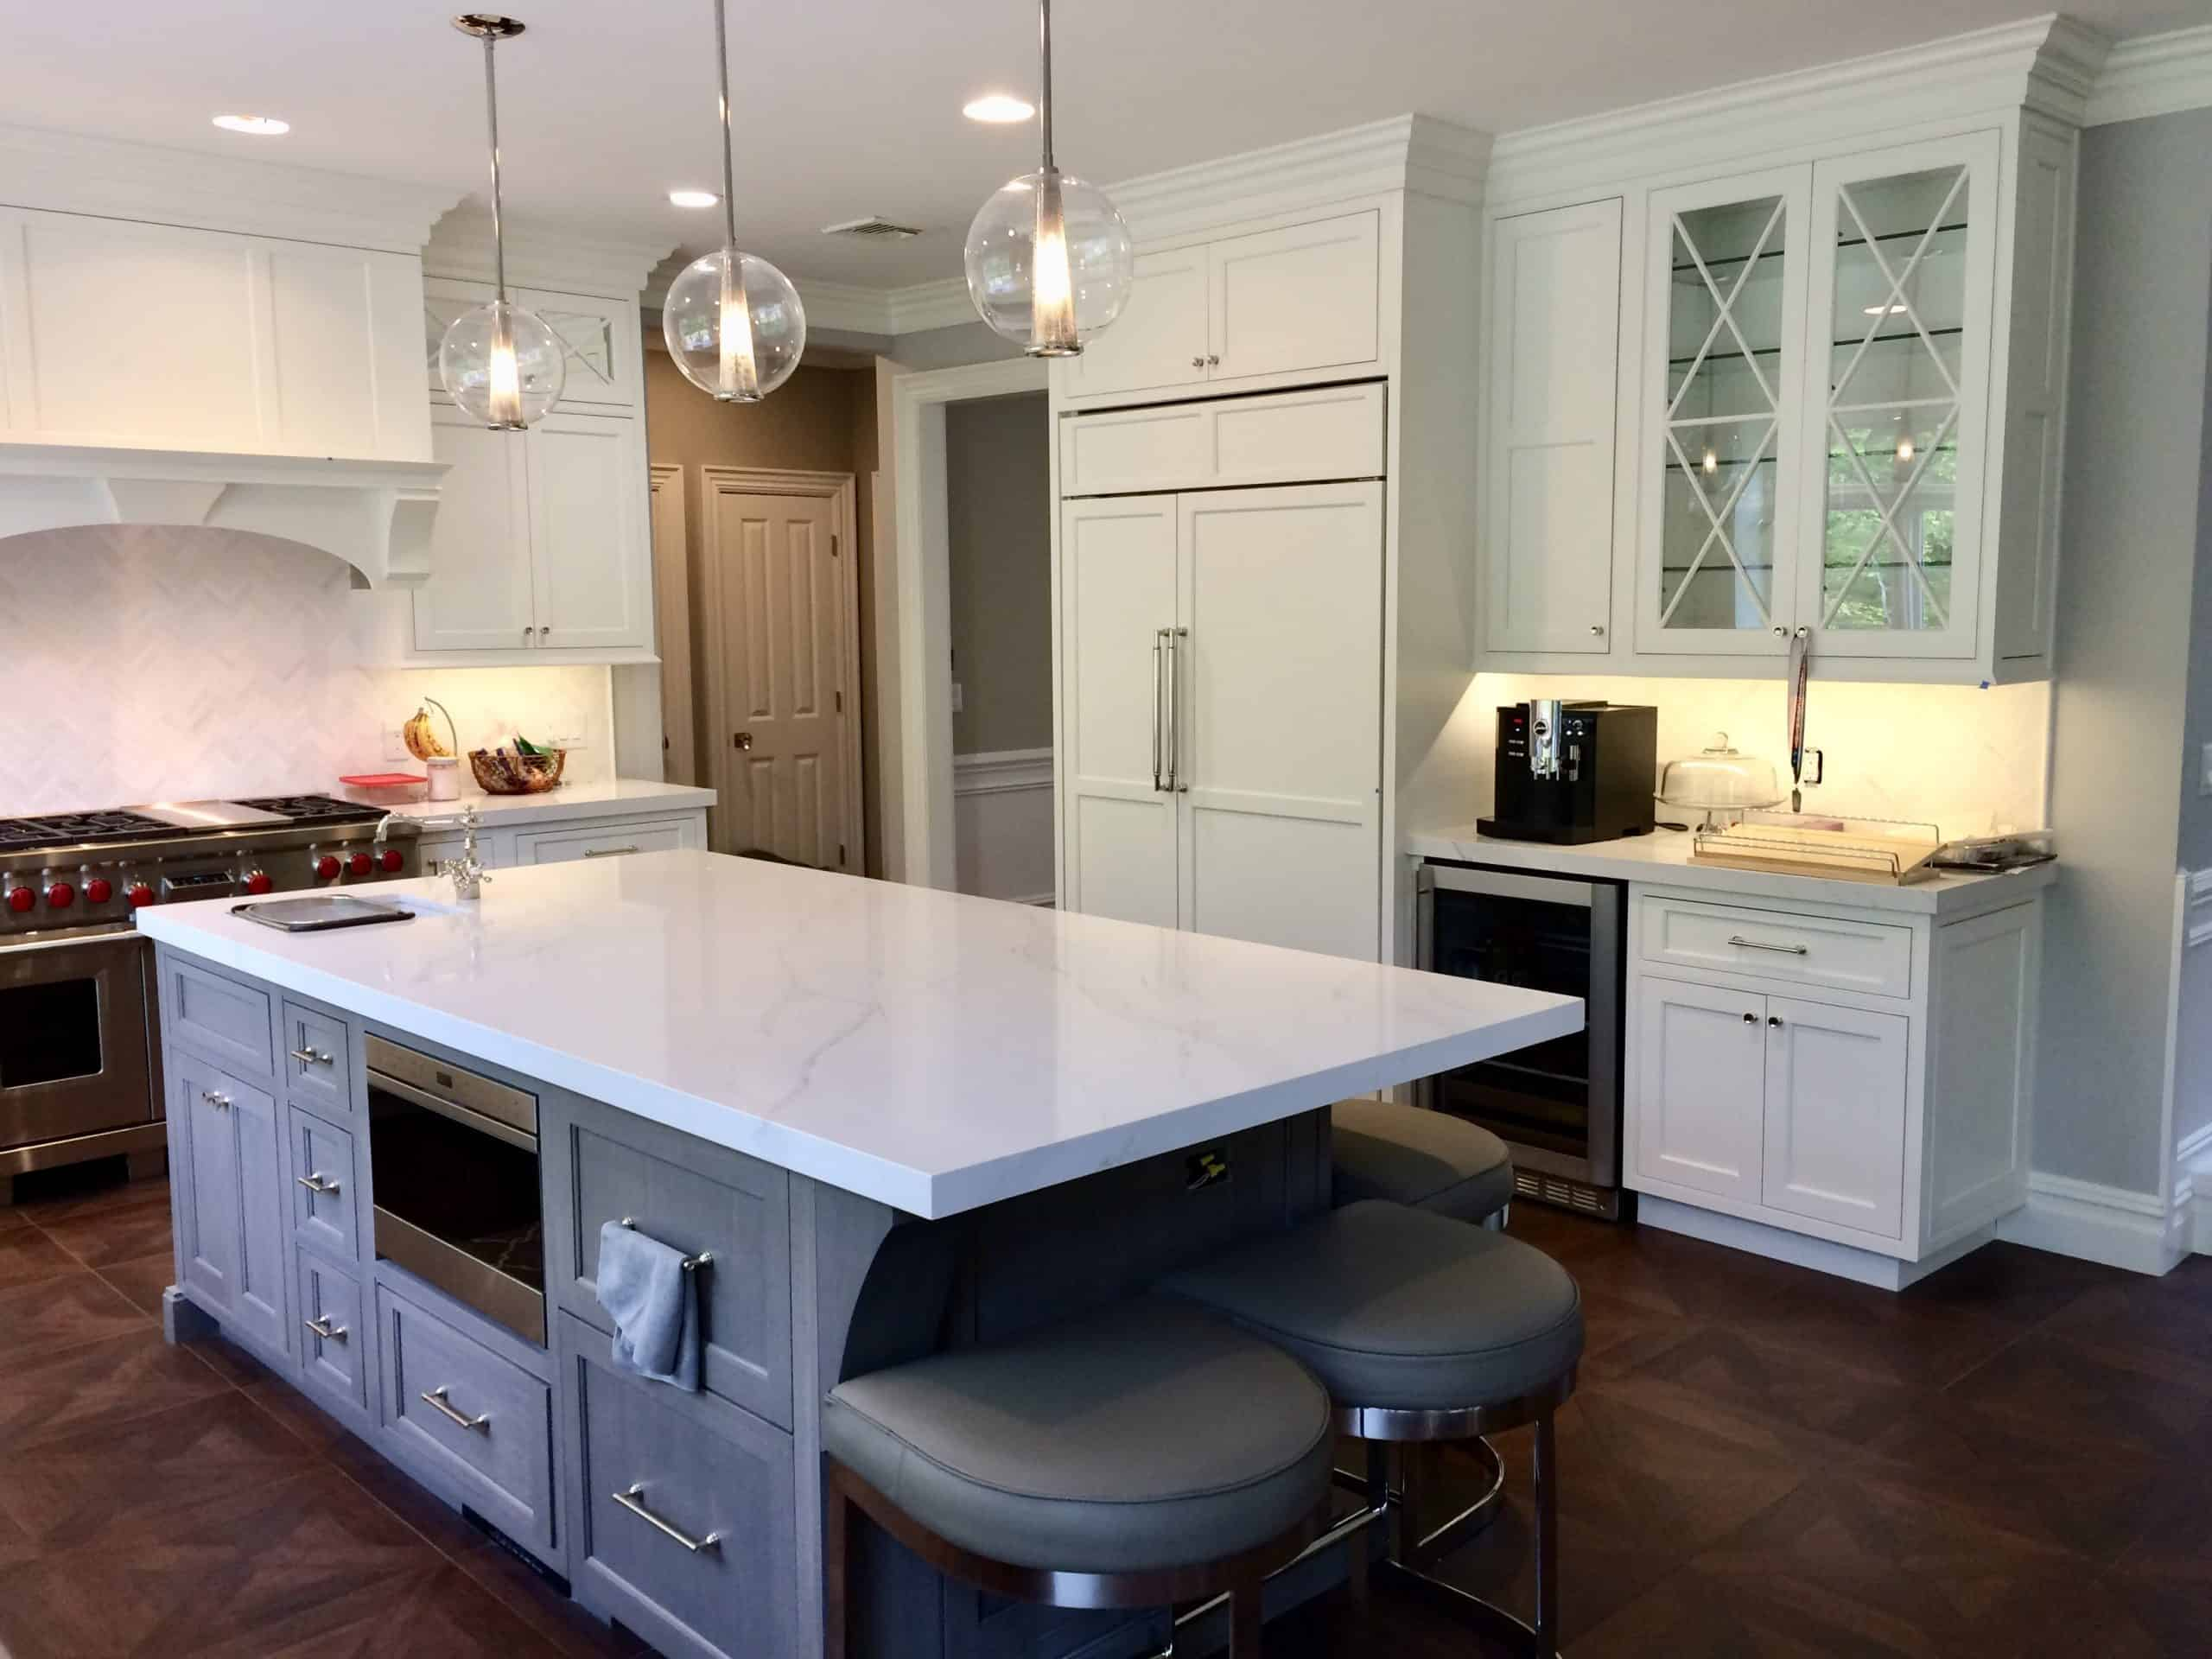 How Long Does a Kitchen Remodel Take